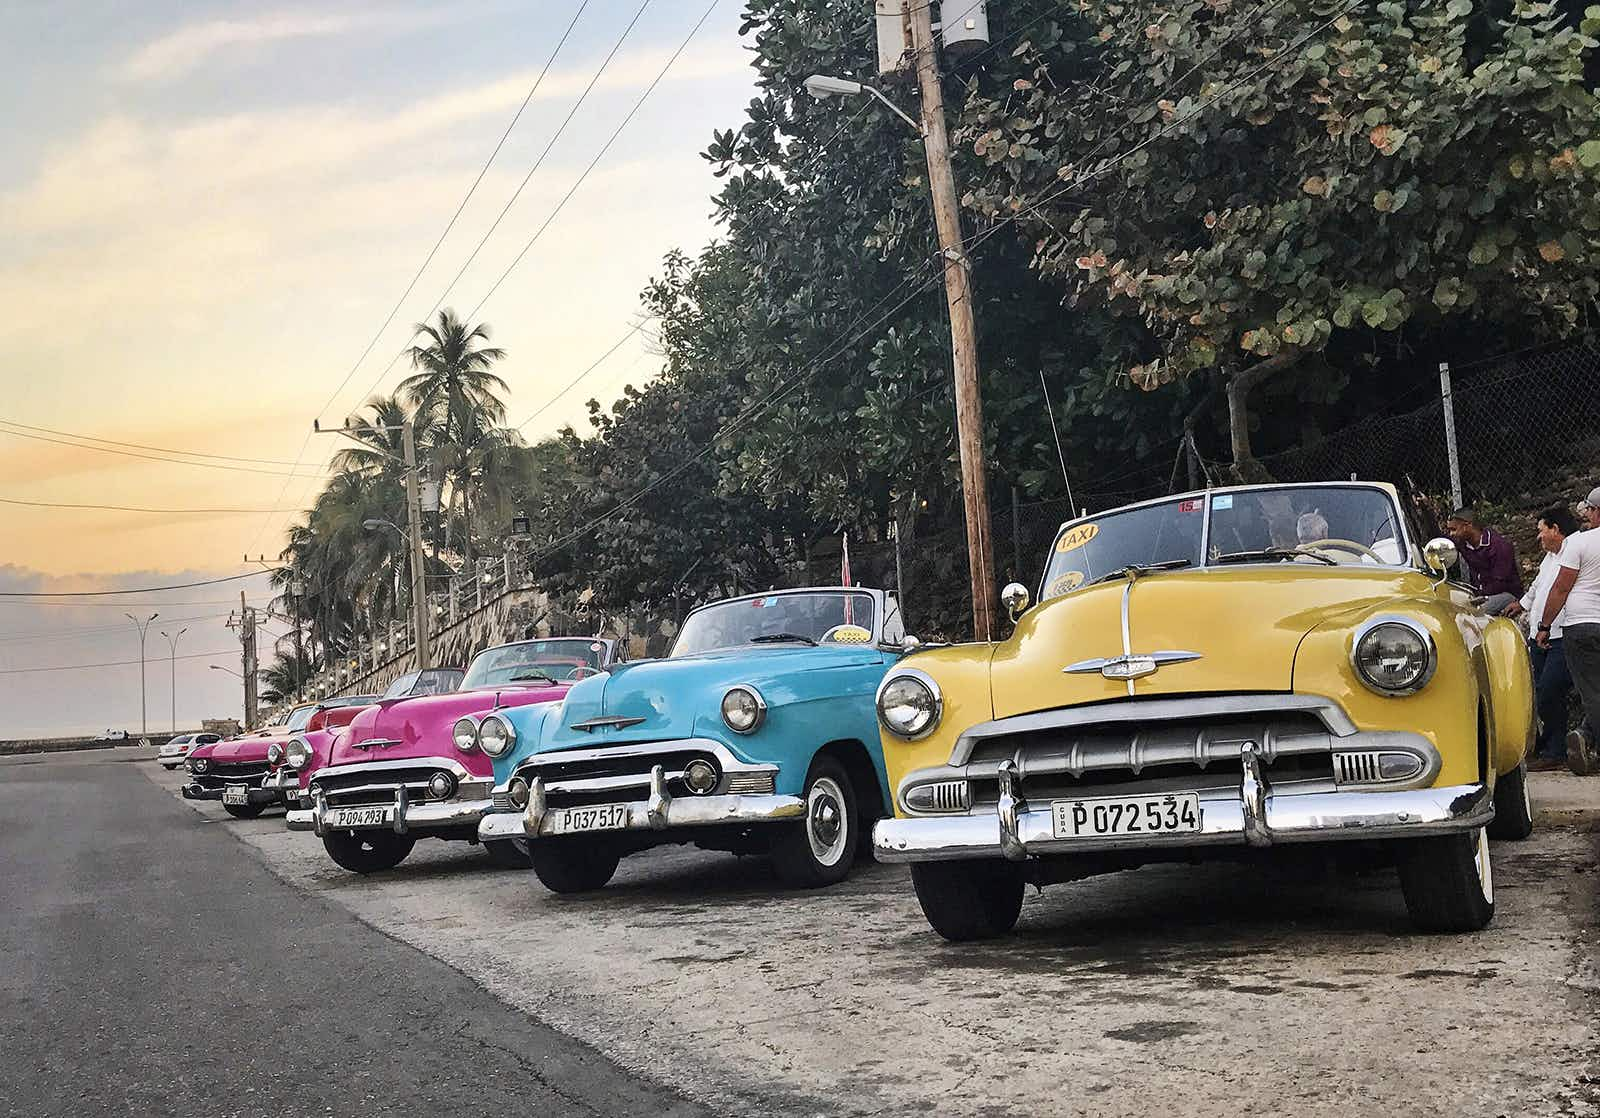 Casas and Cadillacs: how tourism works in a changing Cuba